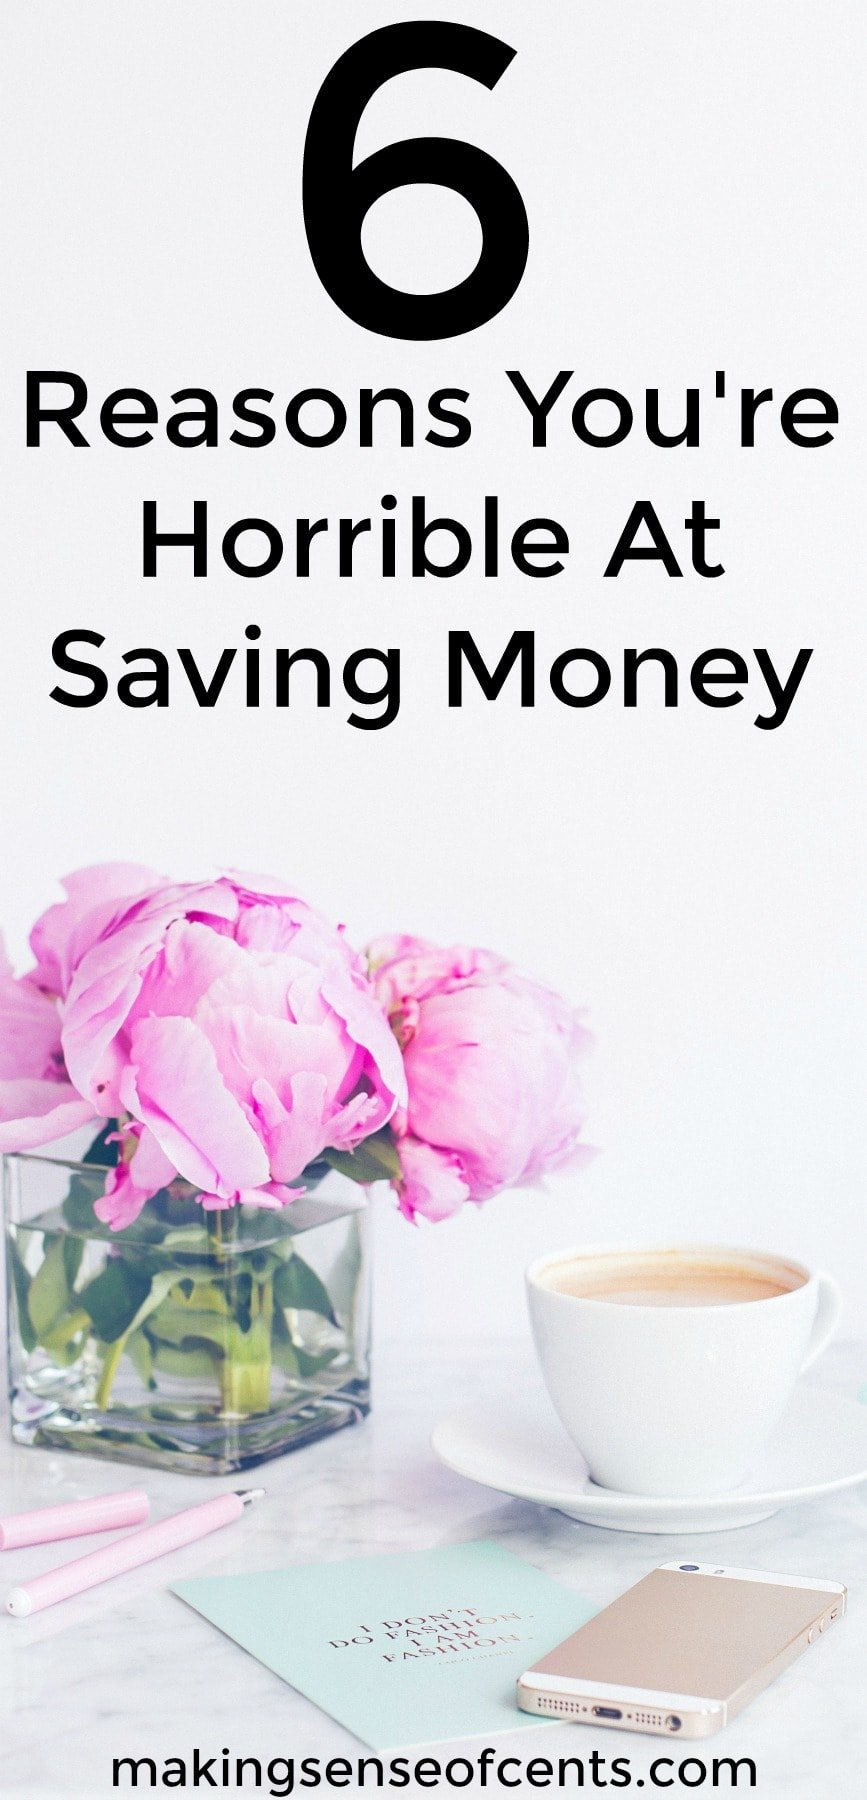 Check out the 6 reasons you're horrible at saving money. This is a great list!